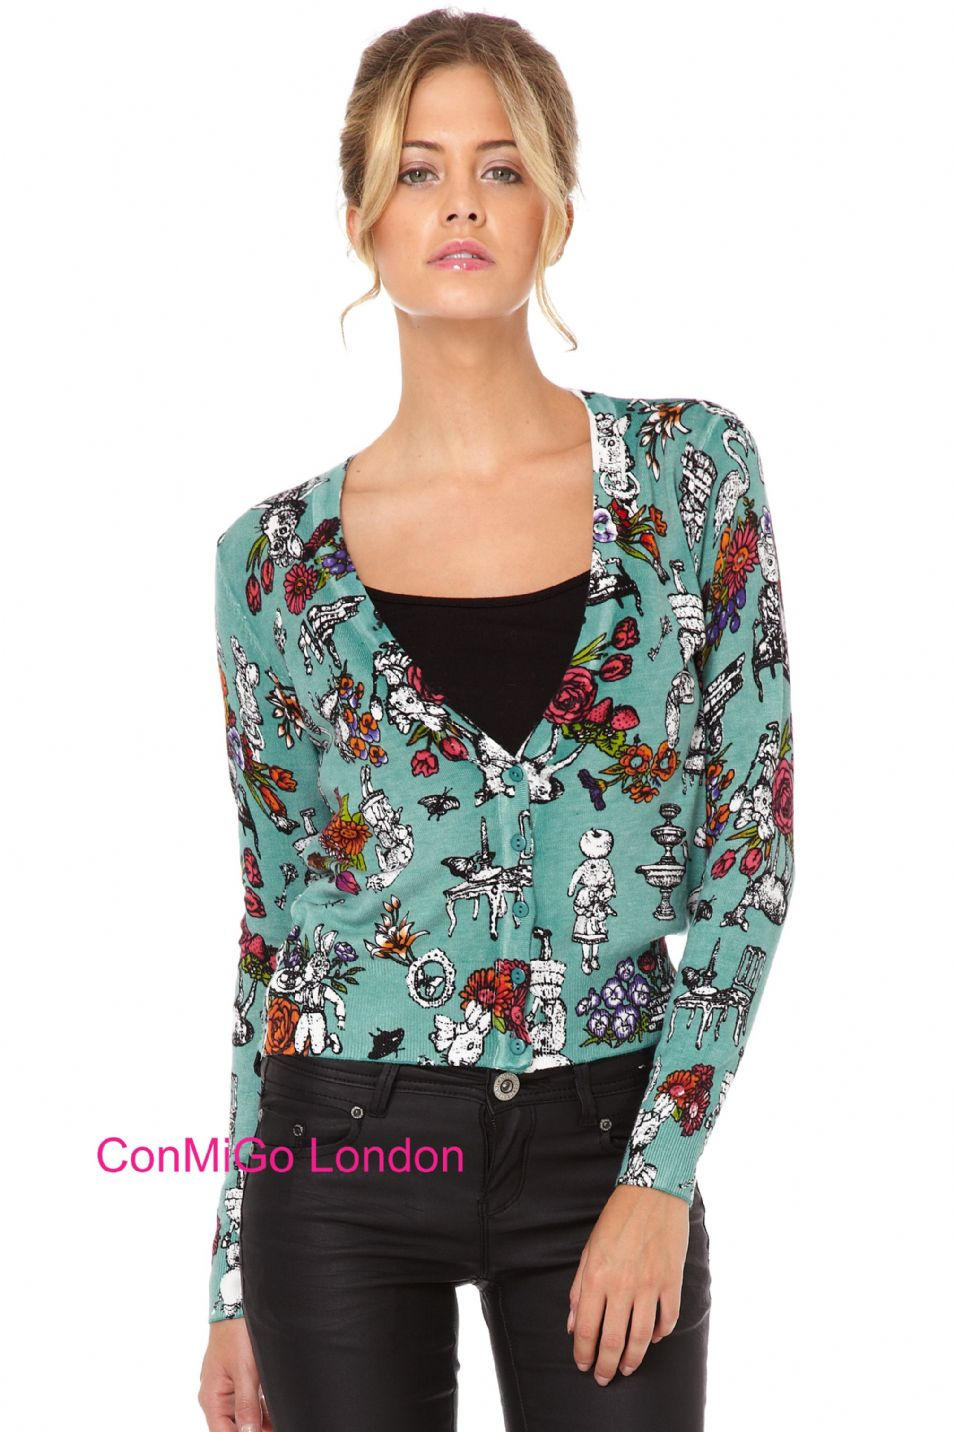 http://www.conmigolondon.co.uk/ekmps/shops/conmigo/images/1a.-miss-jolie-a1222-flora-rabbit-and-cat-print-cardigan-blue-genuine-original-design-12609-p.jpg